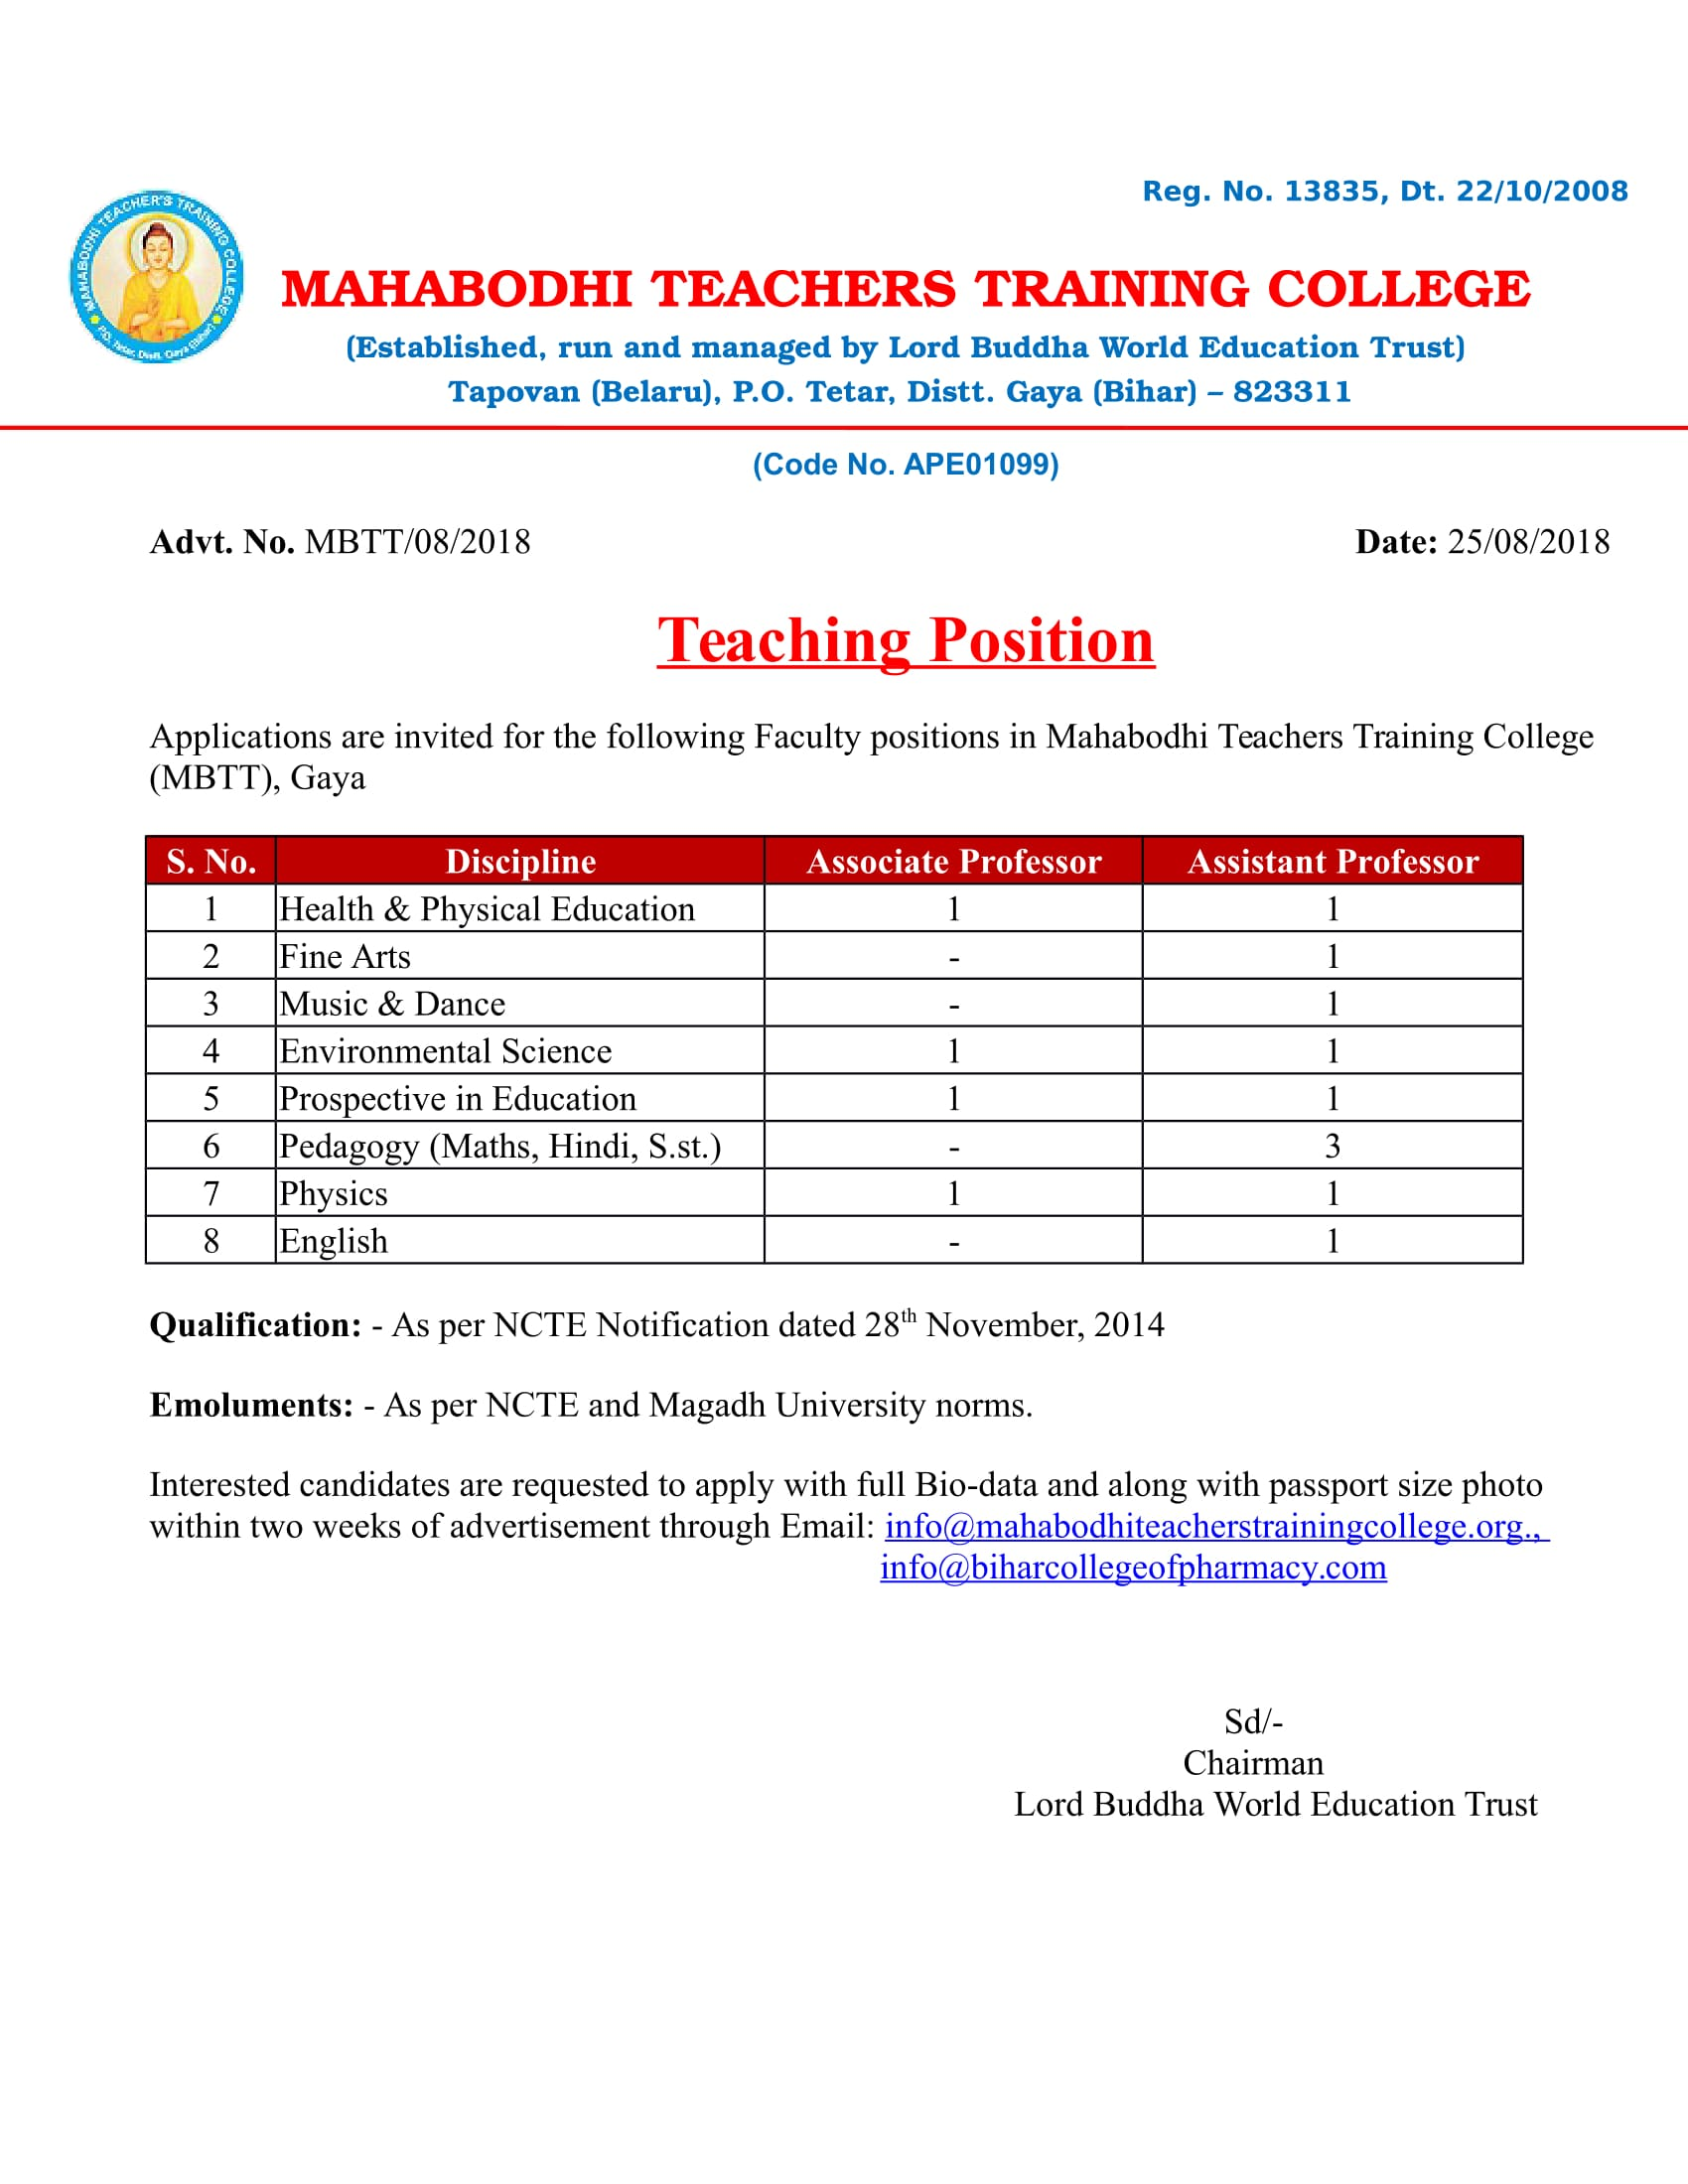 VACANCY FOR THE TEACHING POSITION IN EDUCATION – Mahabodhi Teachers